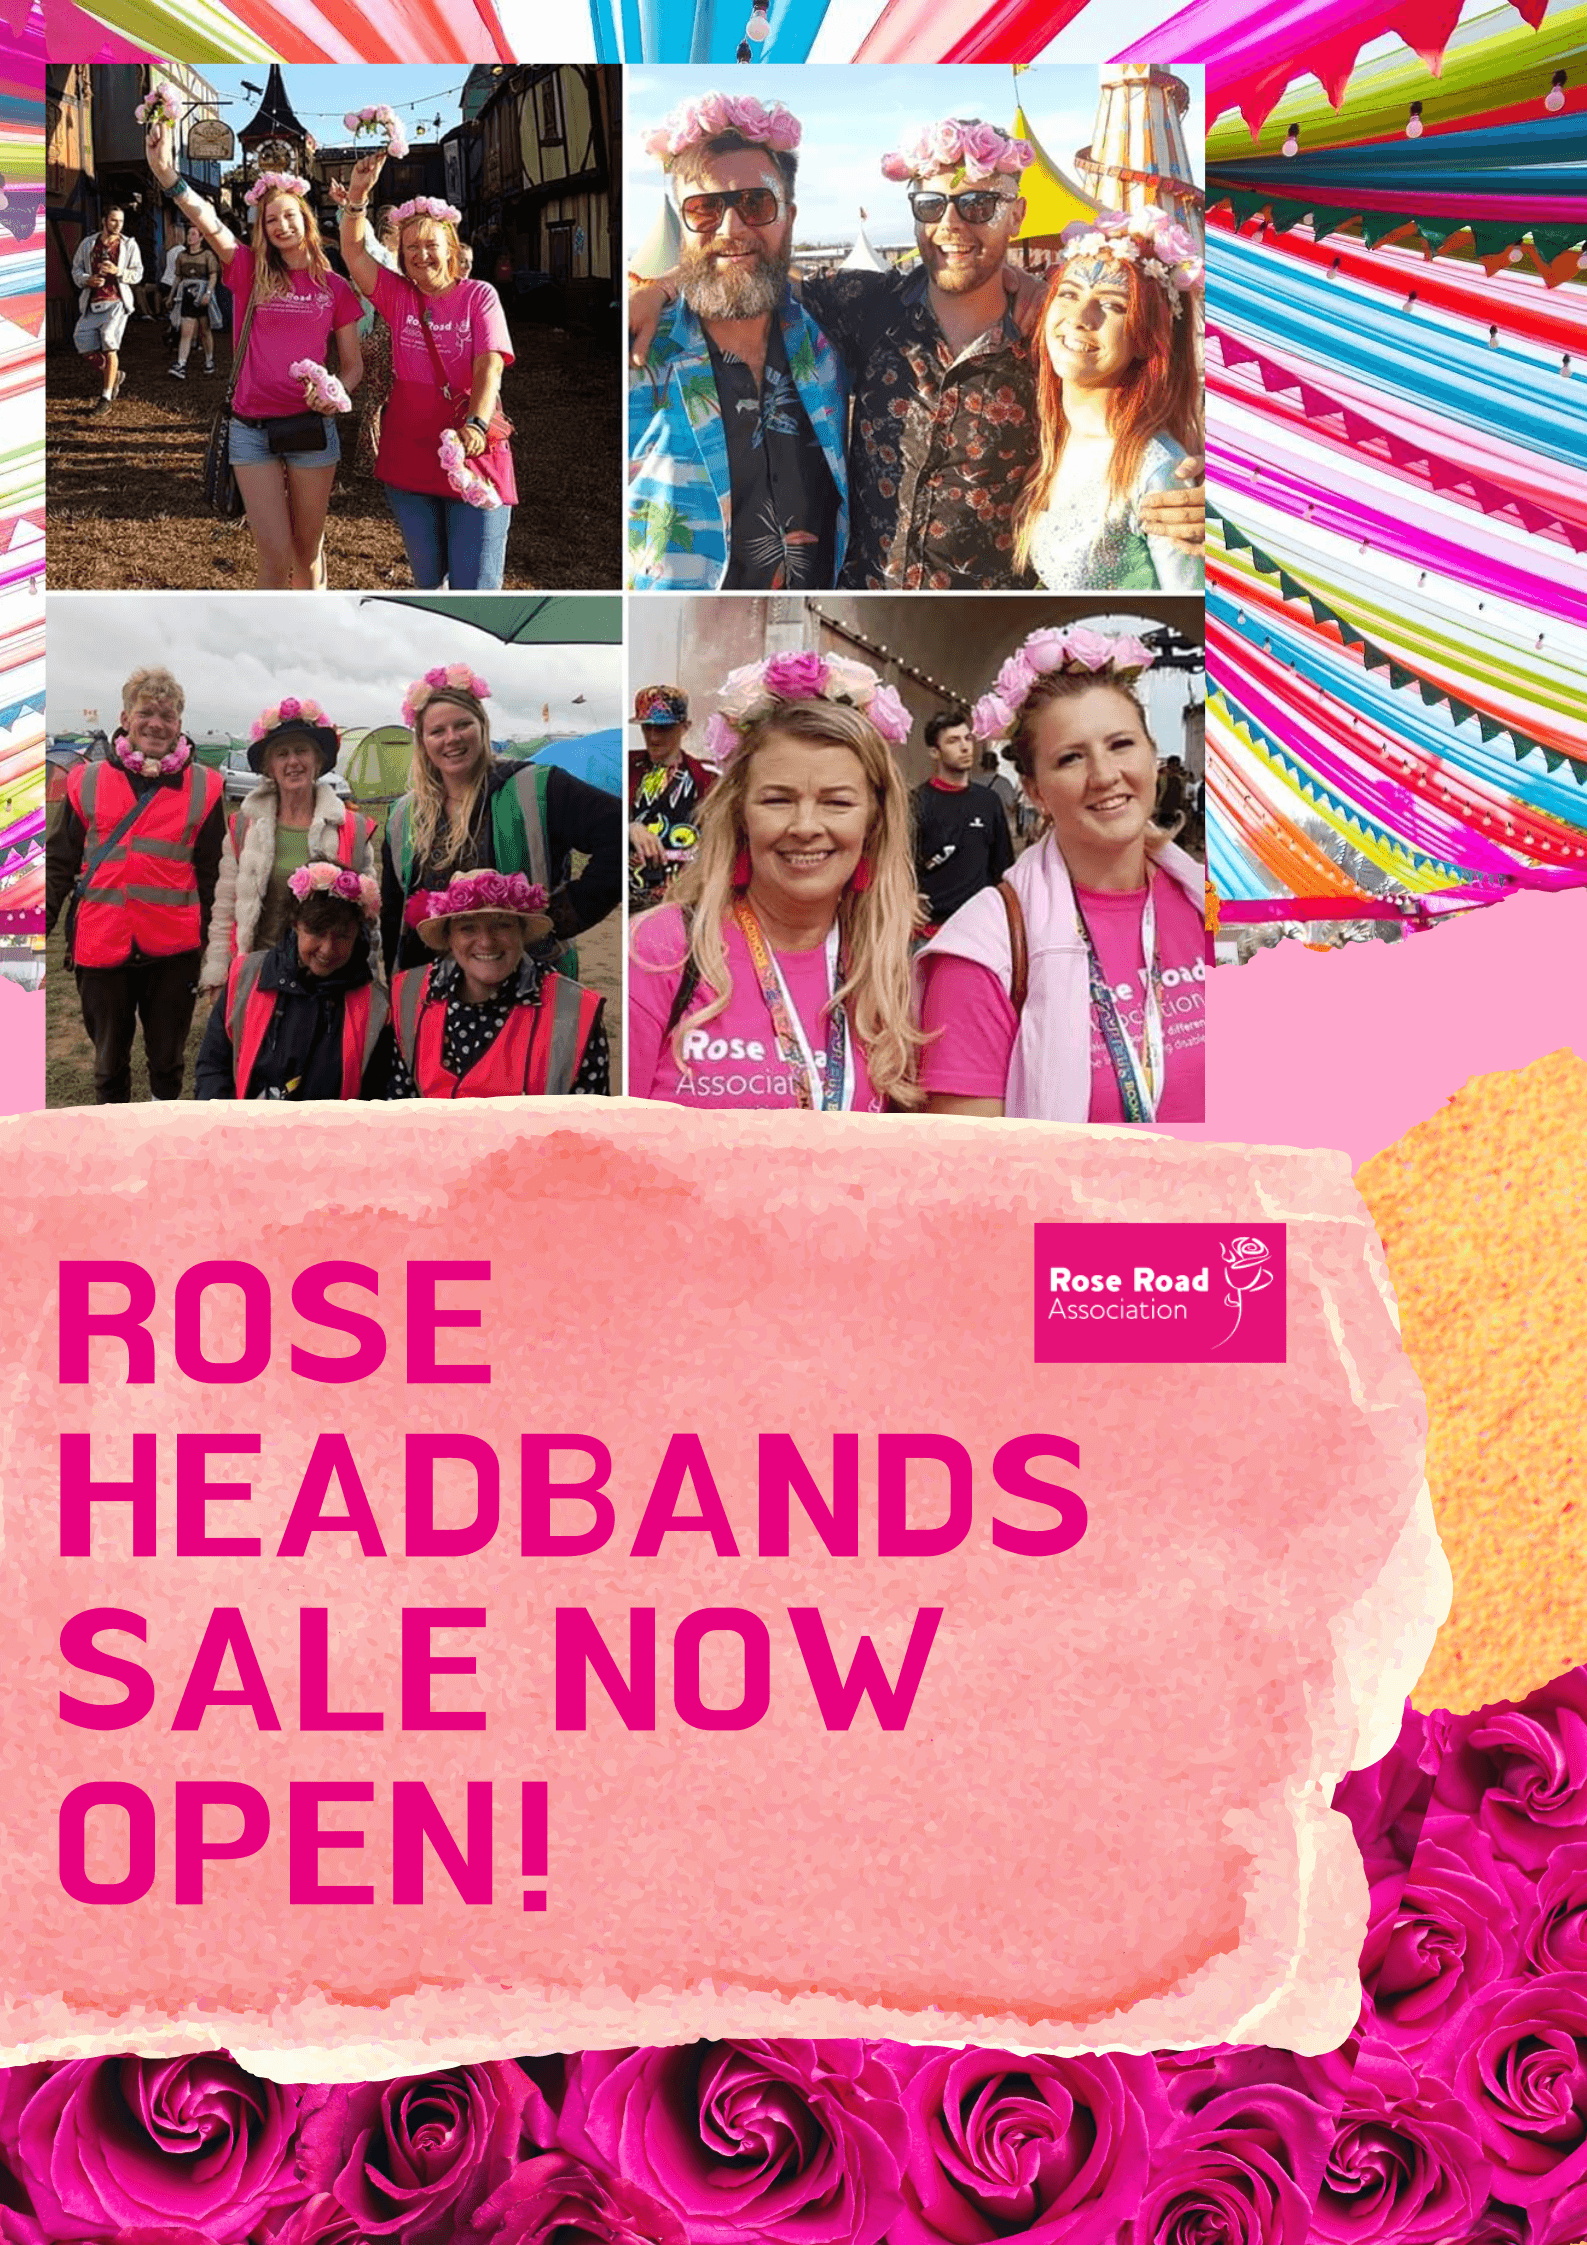 Headbands for sale poster